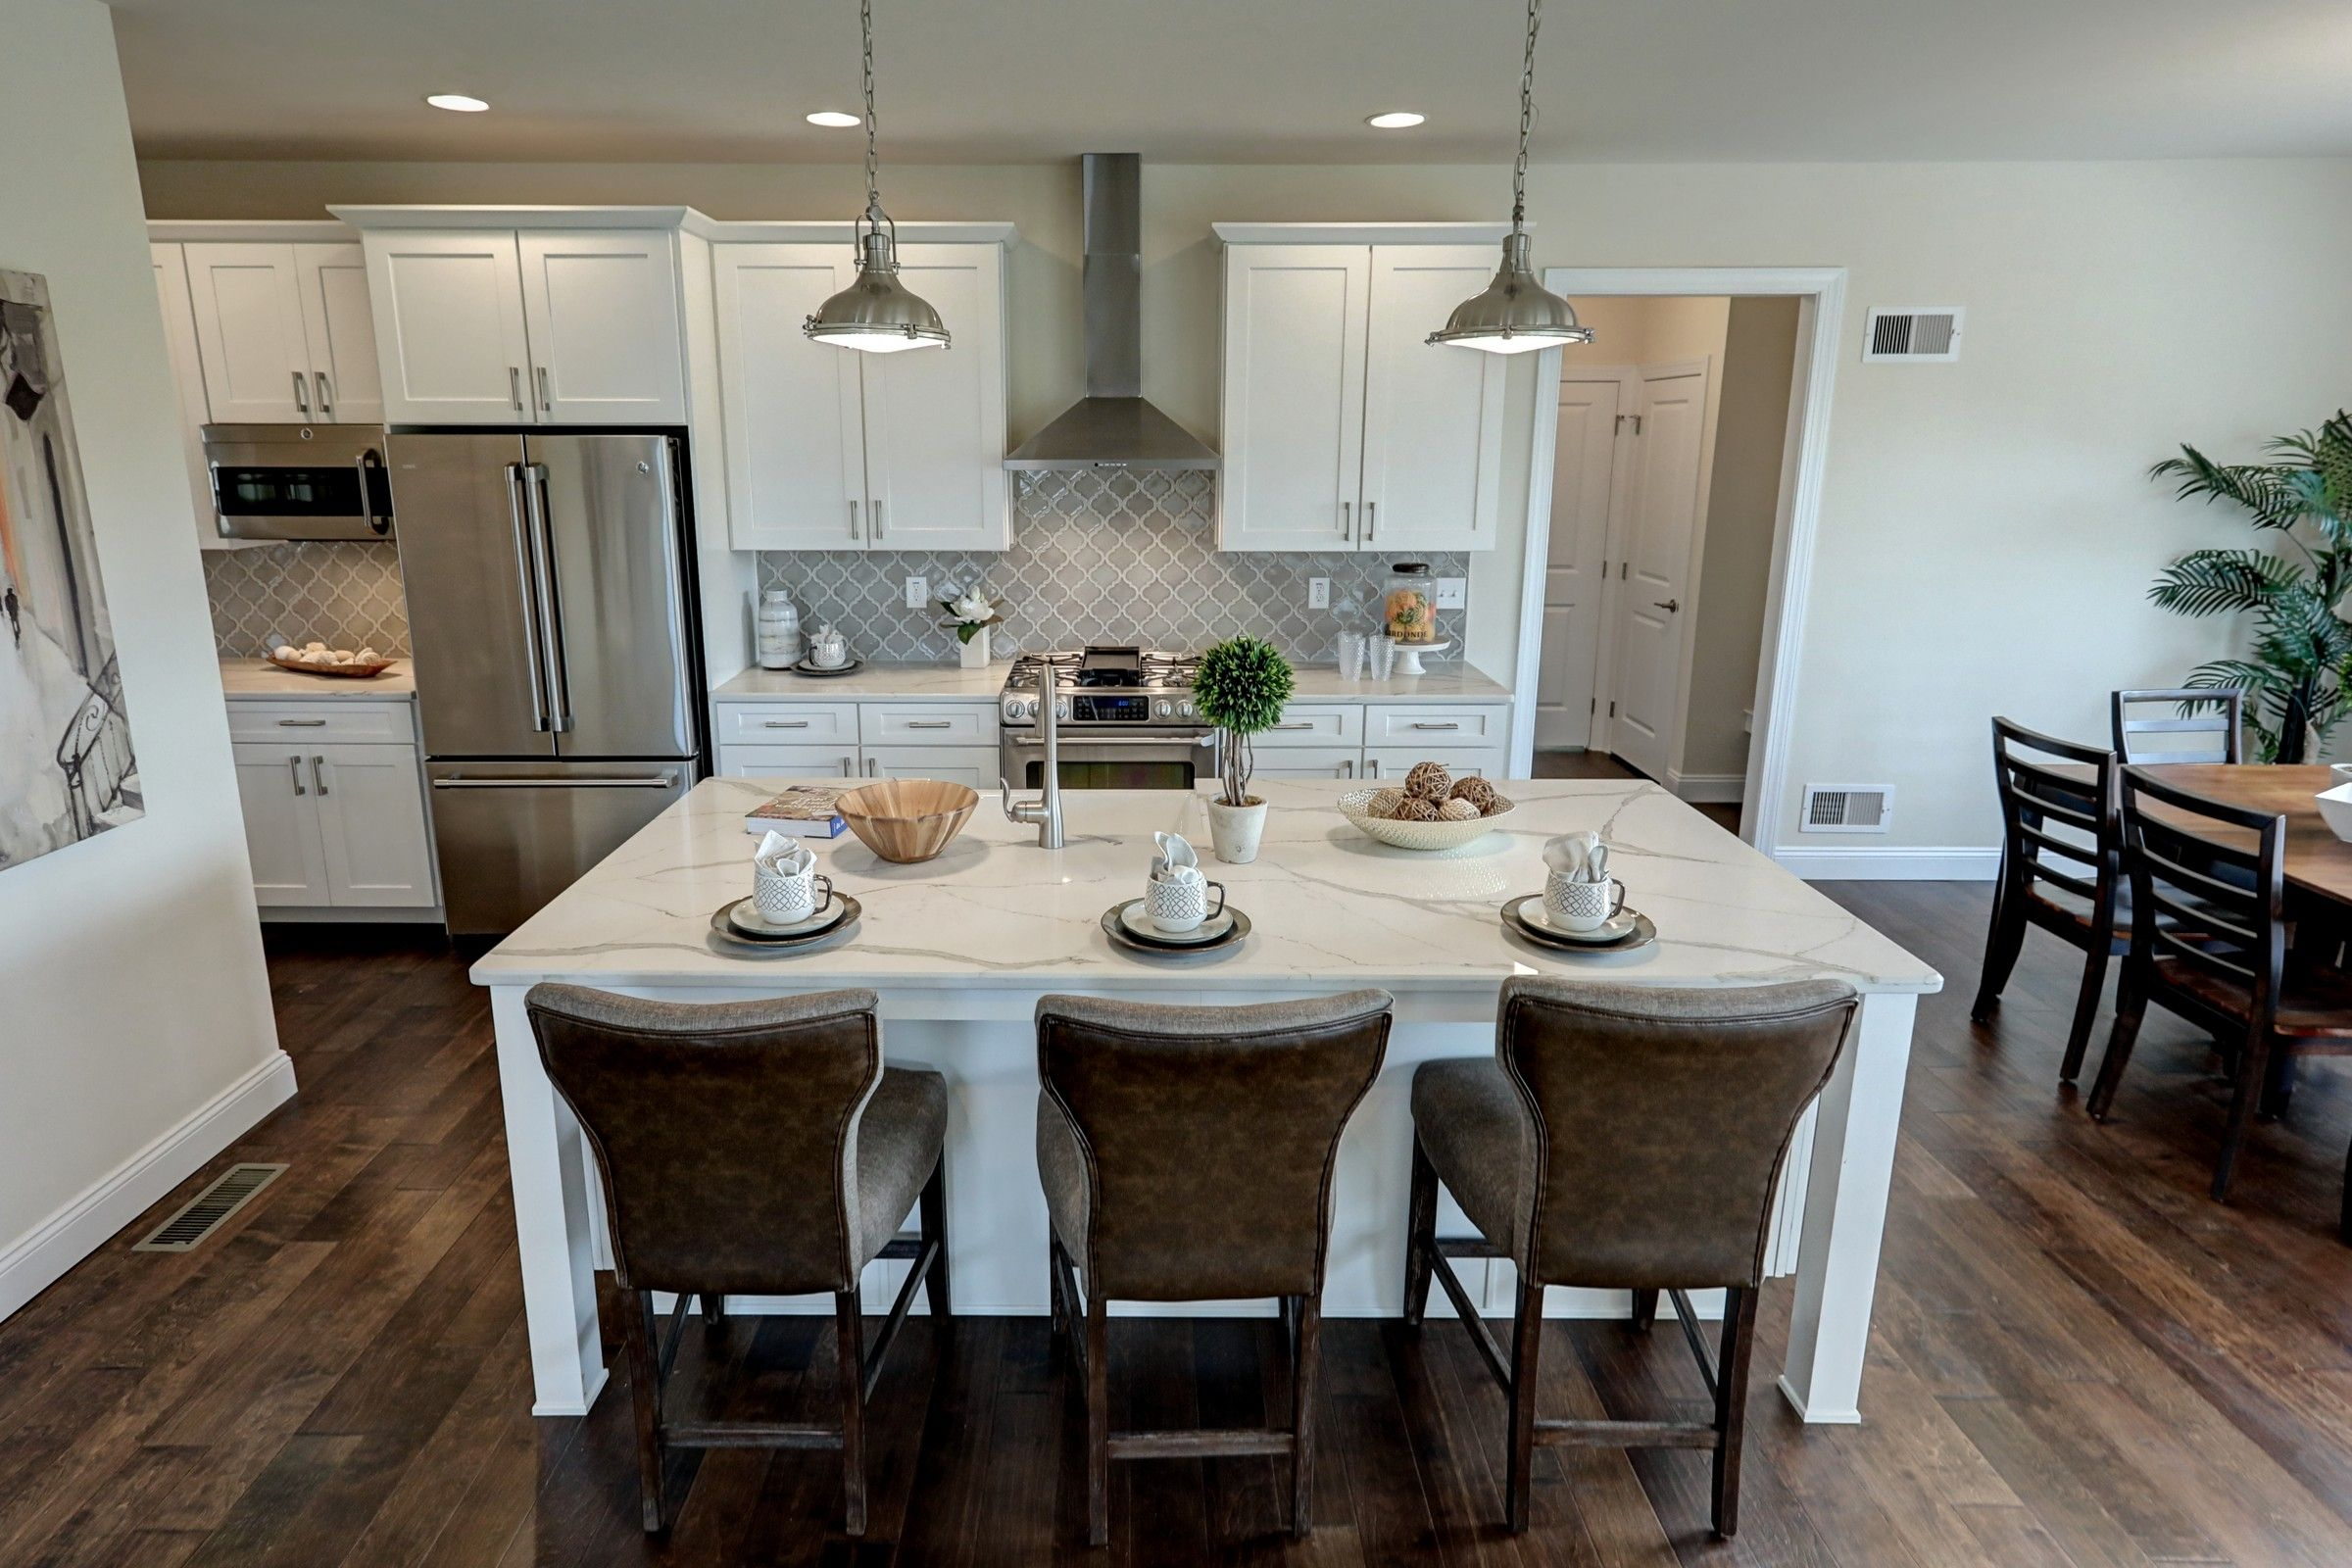 Kitchen featured in the Addison Traditional By Keystone Custom Homes in York, PA